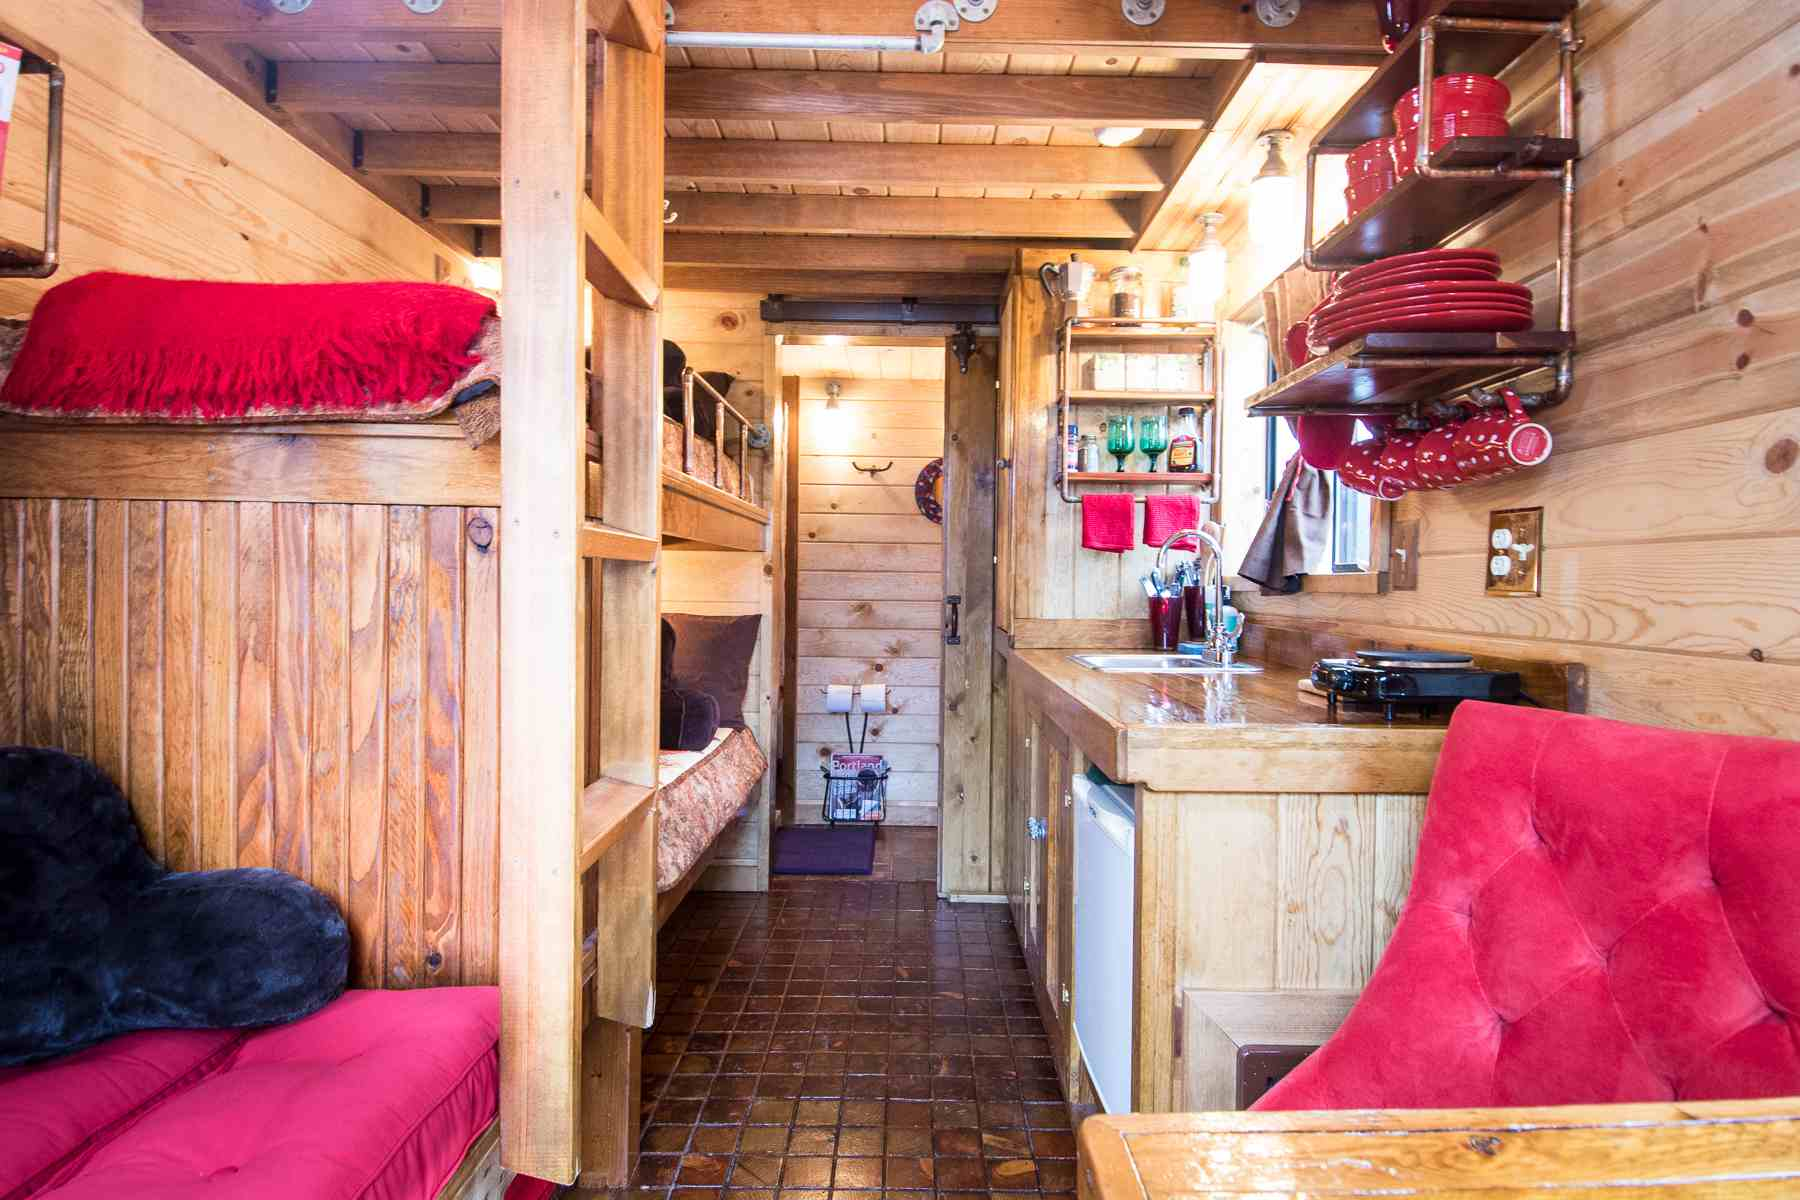 The Caravan is a One-of-a-Kind Boutique Hotel on caboose home plans, bobber caboose model plans, caboose interior plans, caboose construction plans, caboose diy plans, caboose cabin plans, caboose shed plans,